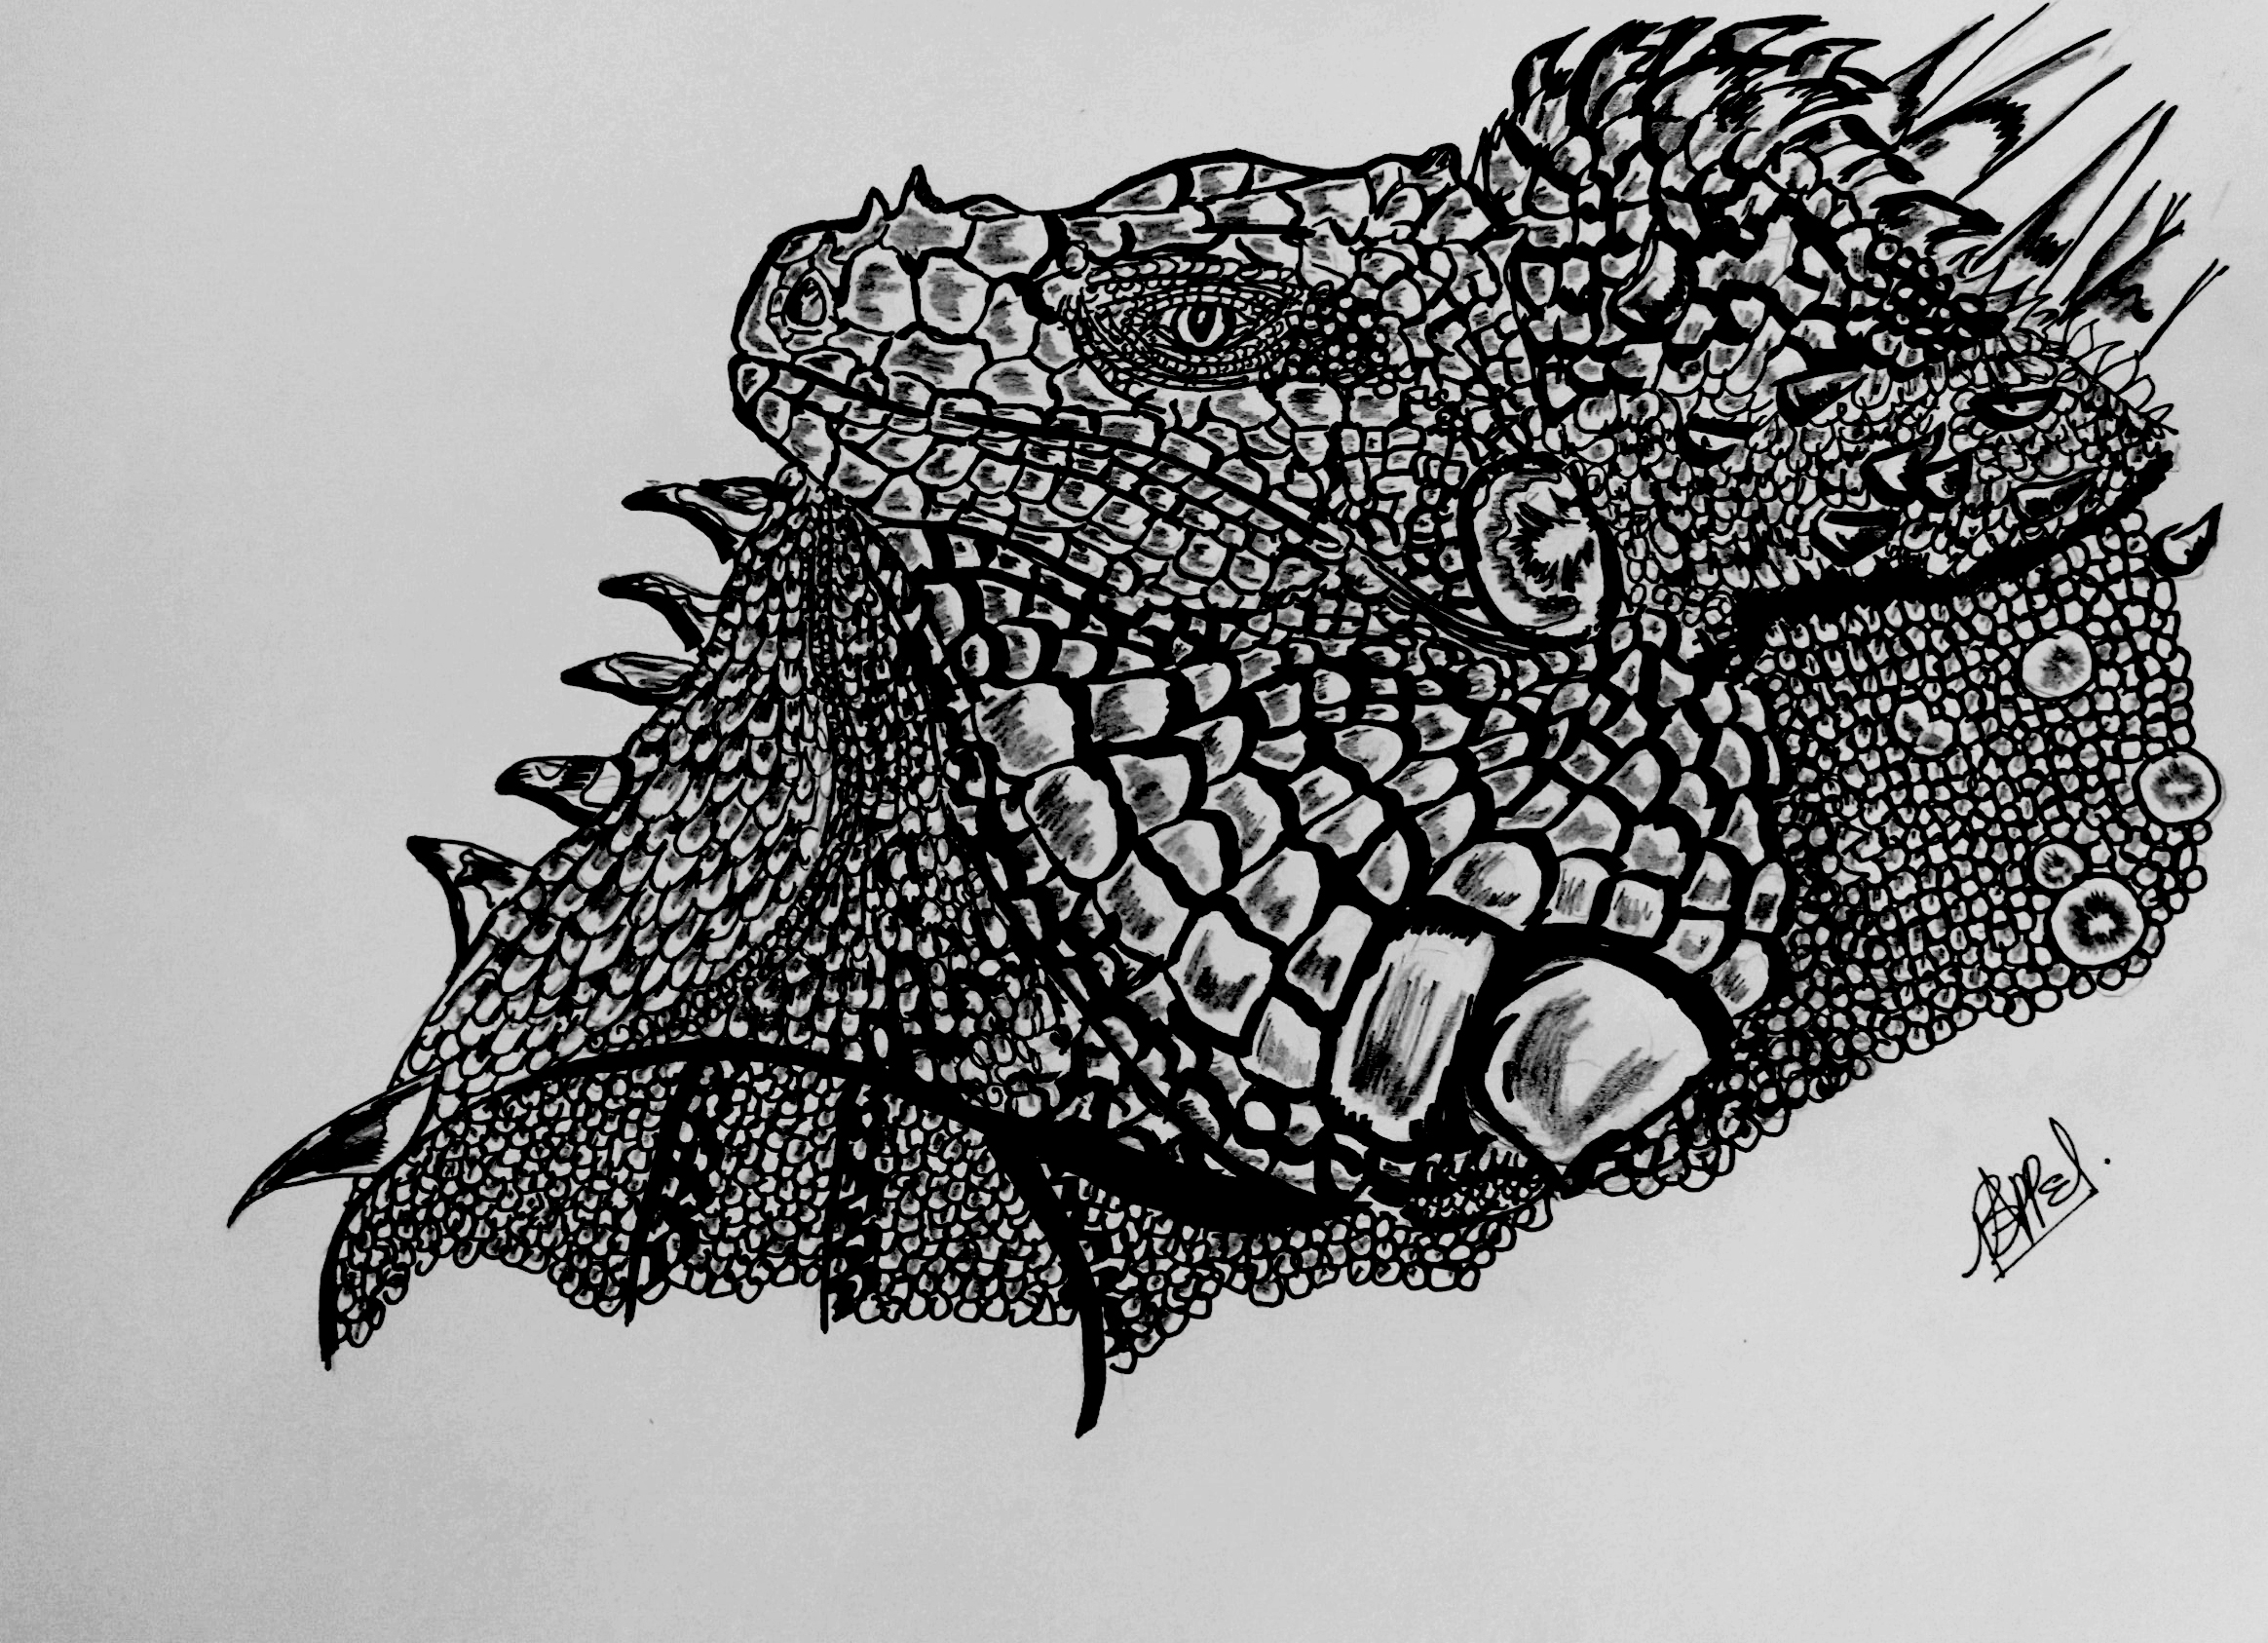 iguana-ink-sketch-clean